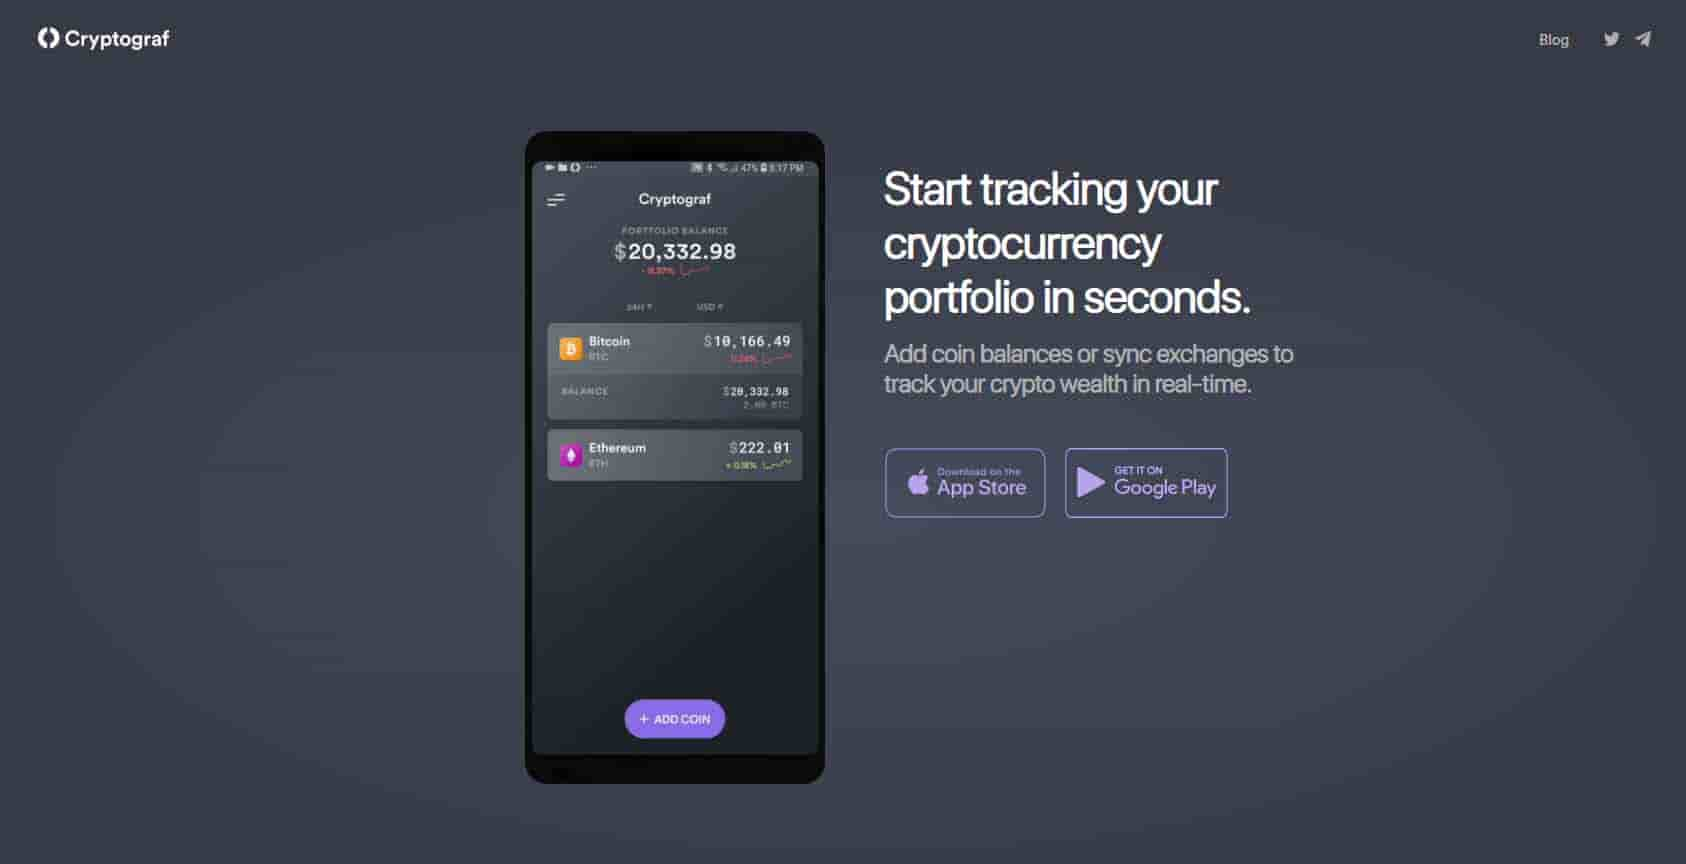 CryptoGraf cryptocurrency tracking